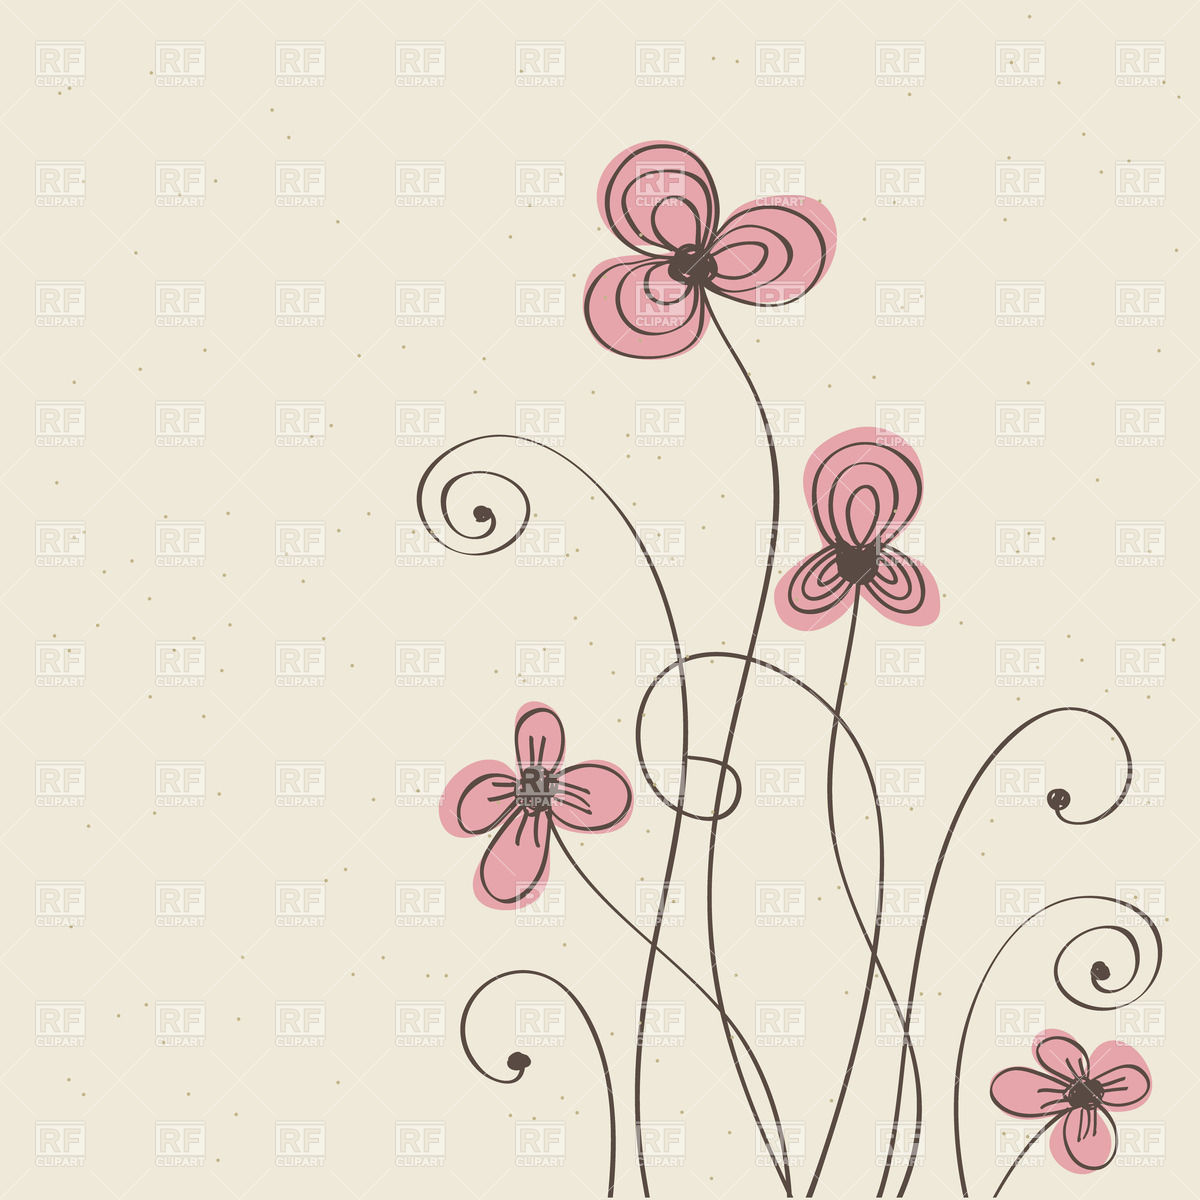 Hand drawn flowers with long stems Vector Image #24059.